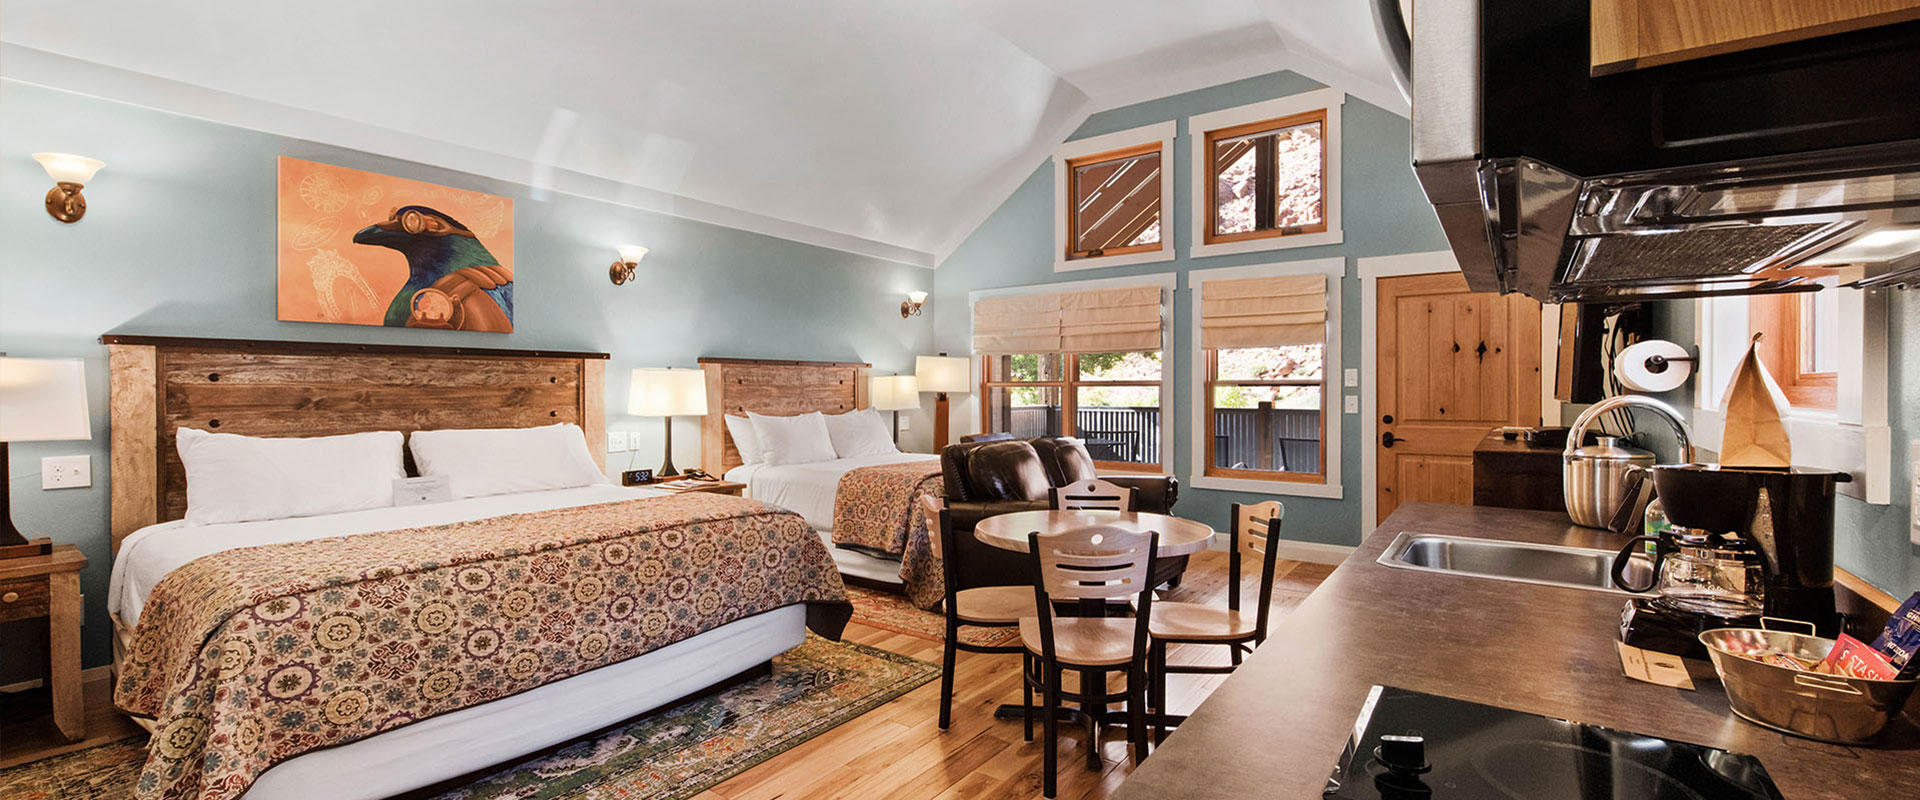 The bedroom of Unit #19 at Moab Springs Ranch is furnished with a king sized bed with a circular geometric print cover, a solid brown wood headboard and white bedside tables.